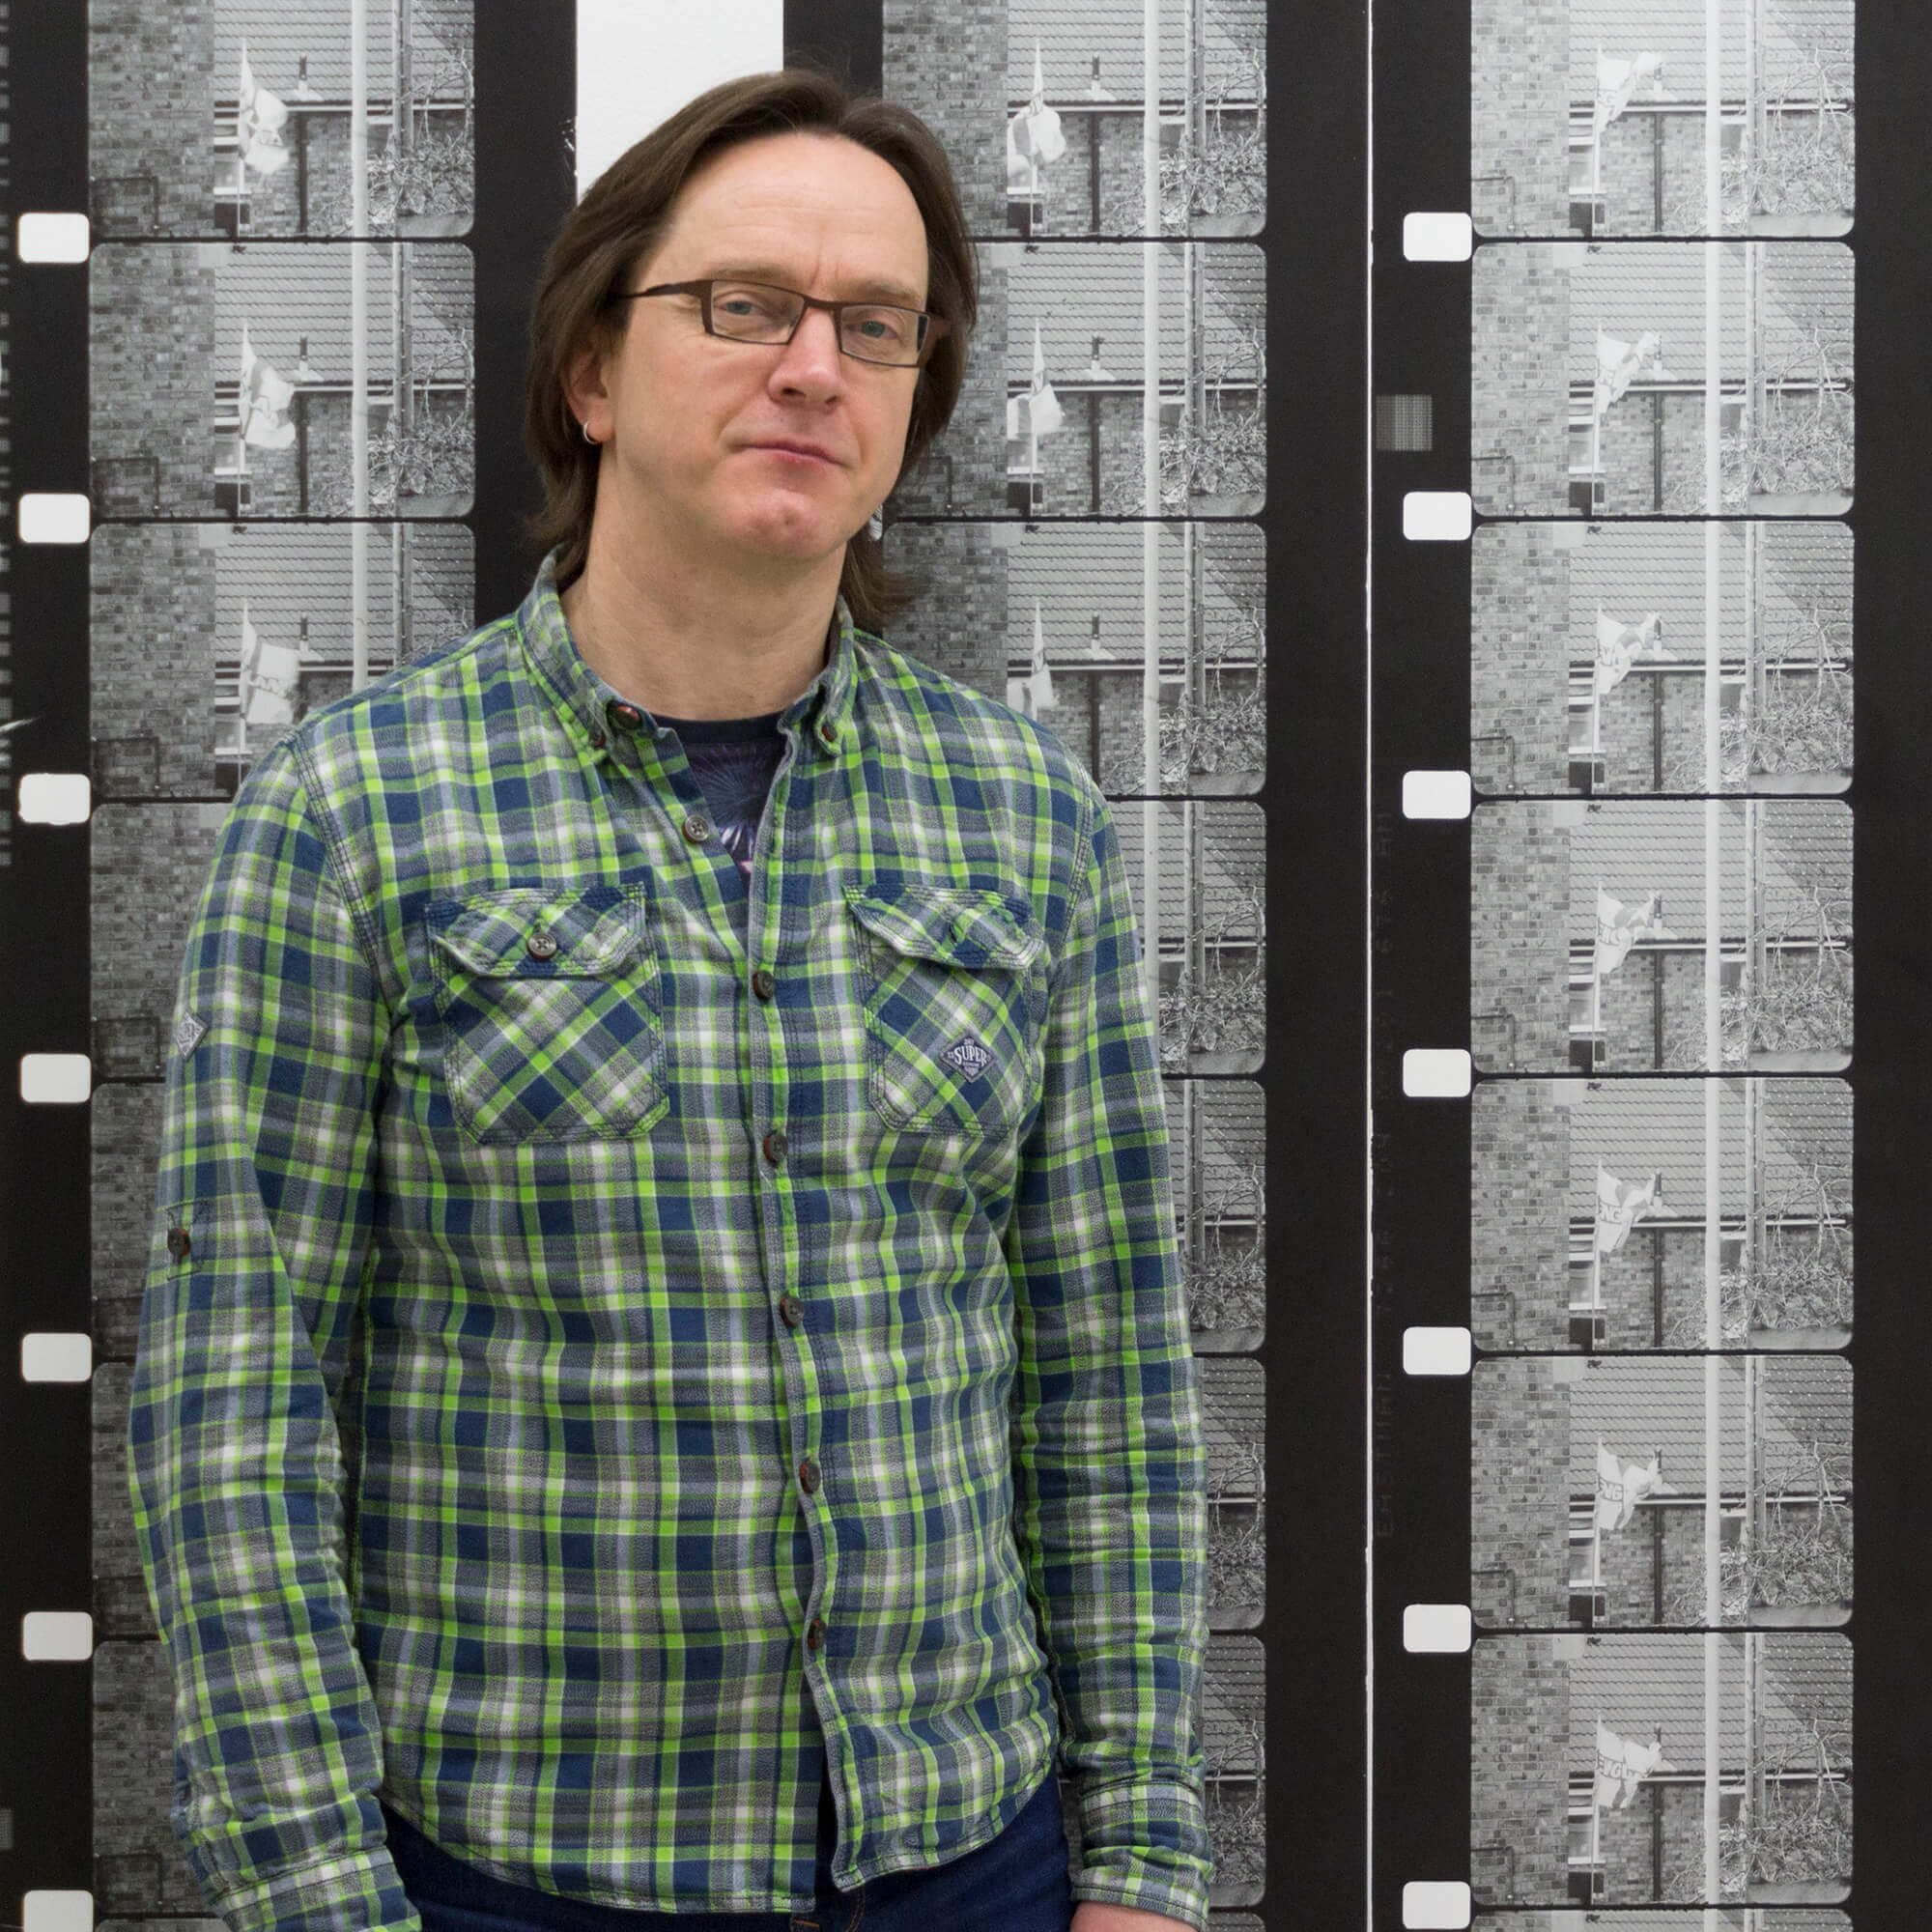 Philip wearing a green, plaid shirt standing in front of film negatives.